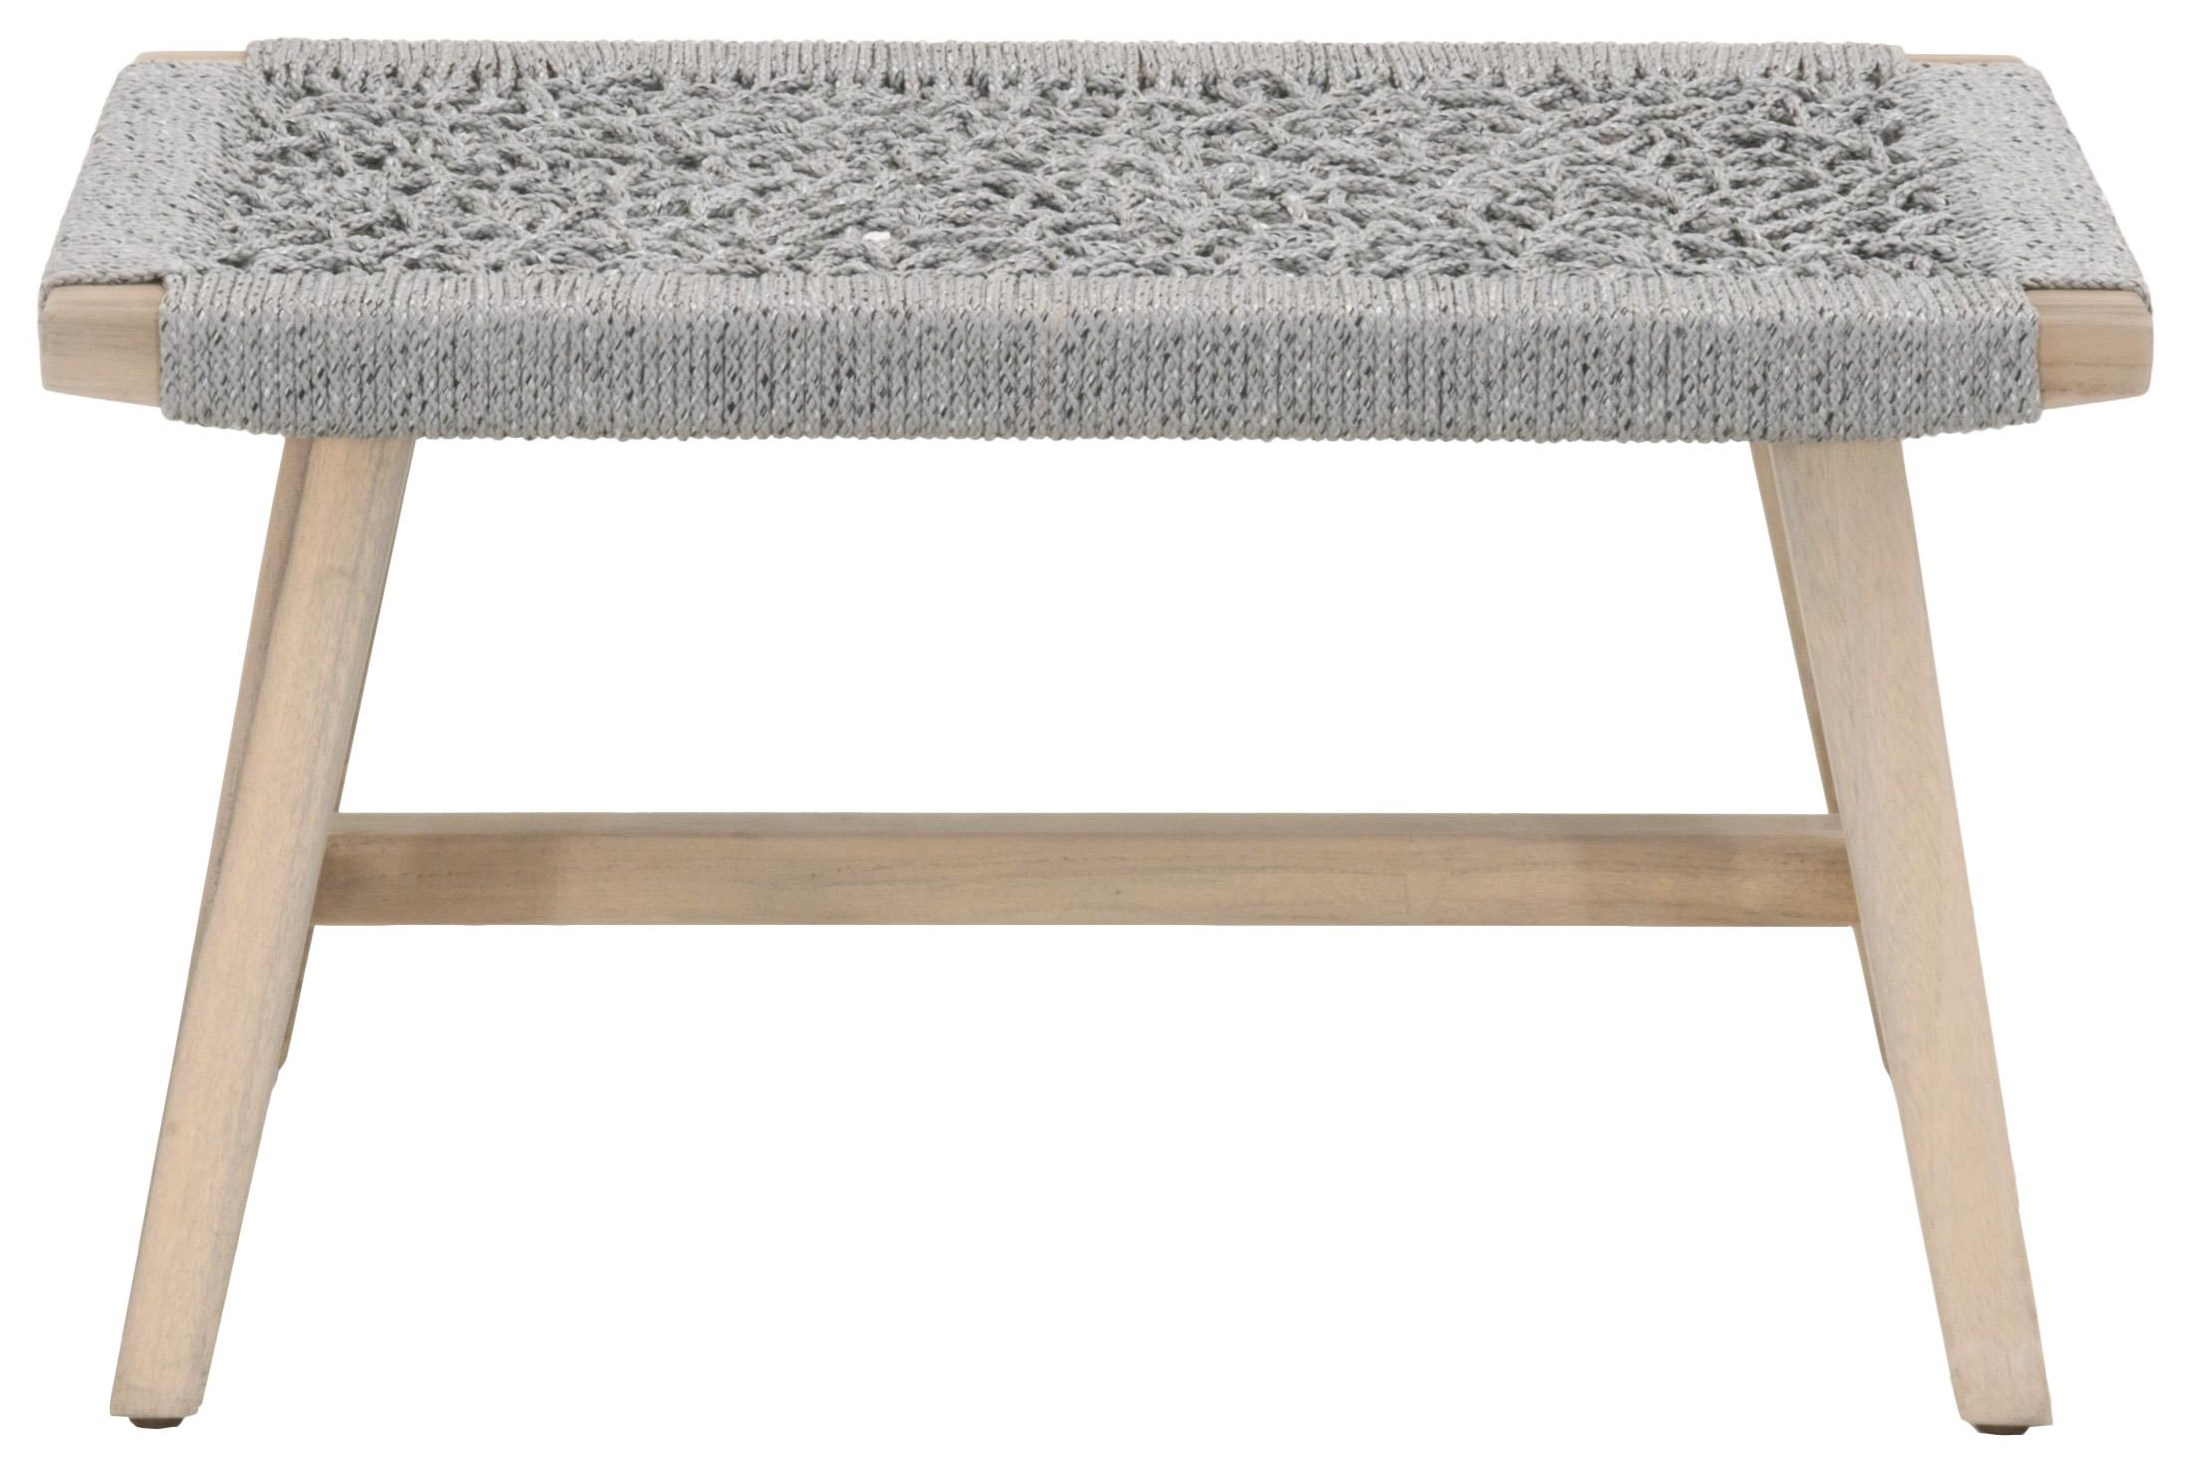 Wicker Outdoor Accent Stool by Essentials for Living at C. S. Wo & Sons Hawaii